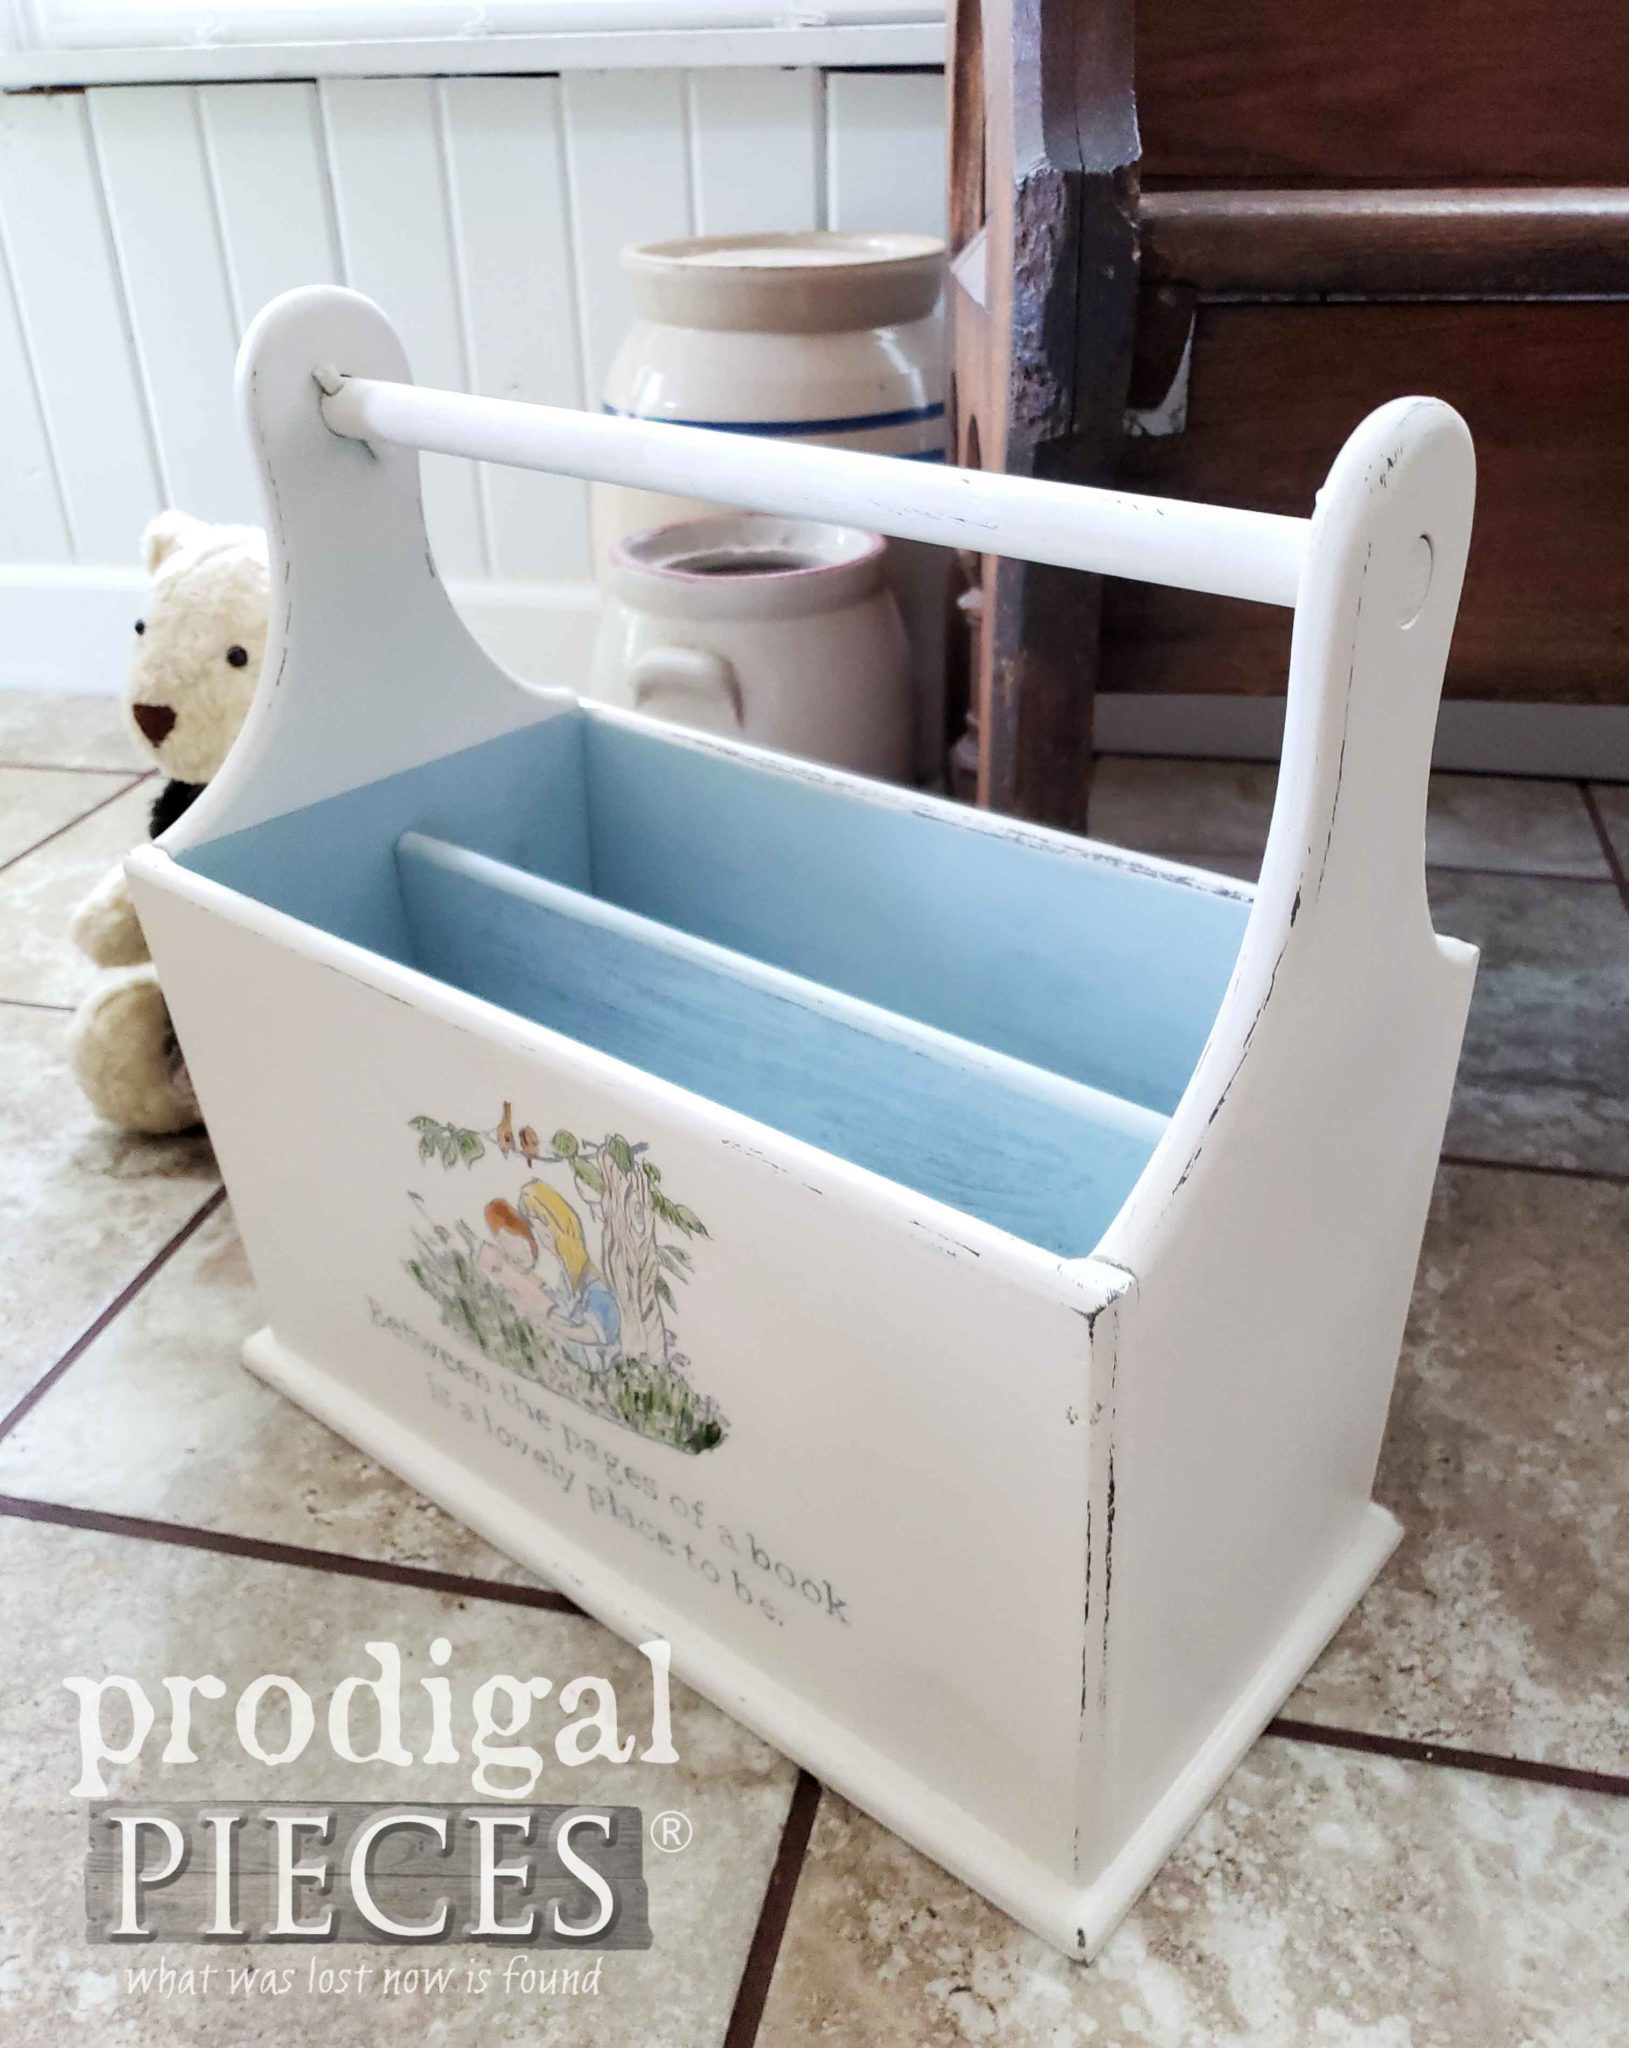 Make your own book caddy using an upcycled magazine rack | DIY details at Prodigal Pieces | prodigalpieces.com